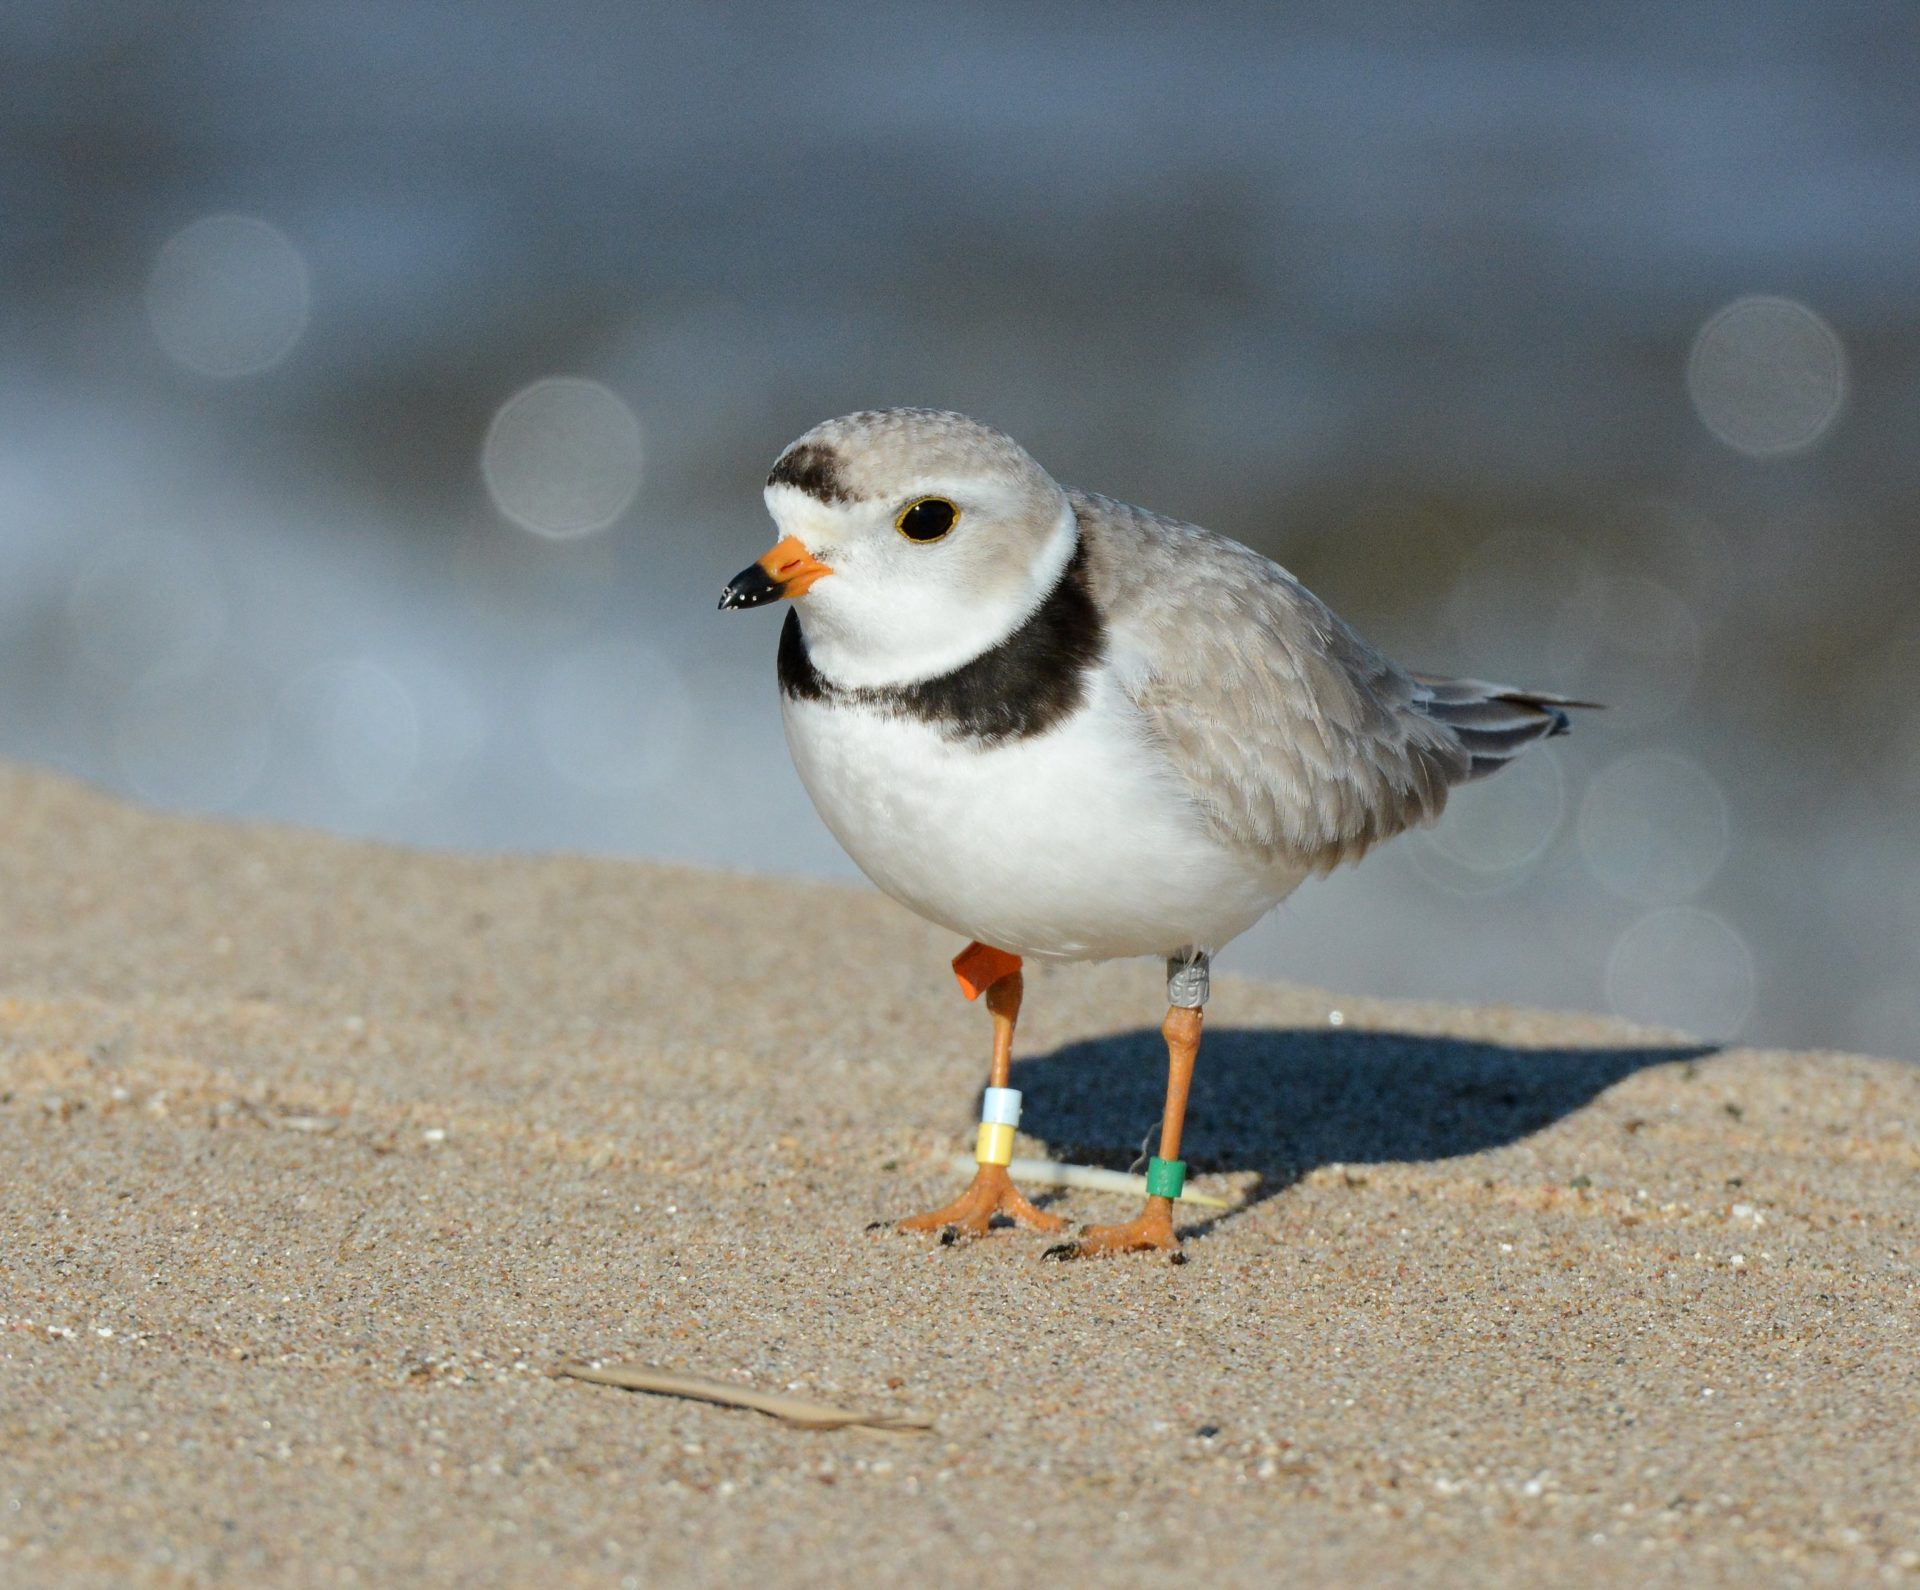 a plover stands on a beach, tagged for research